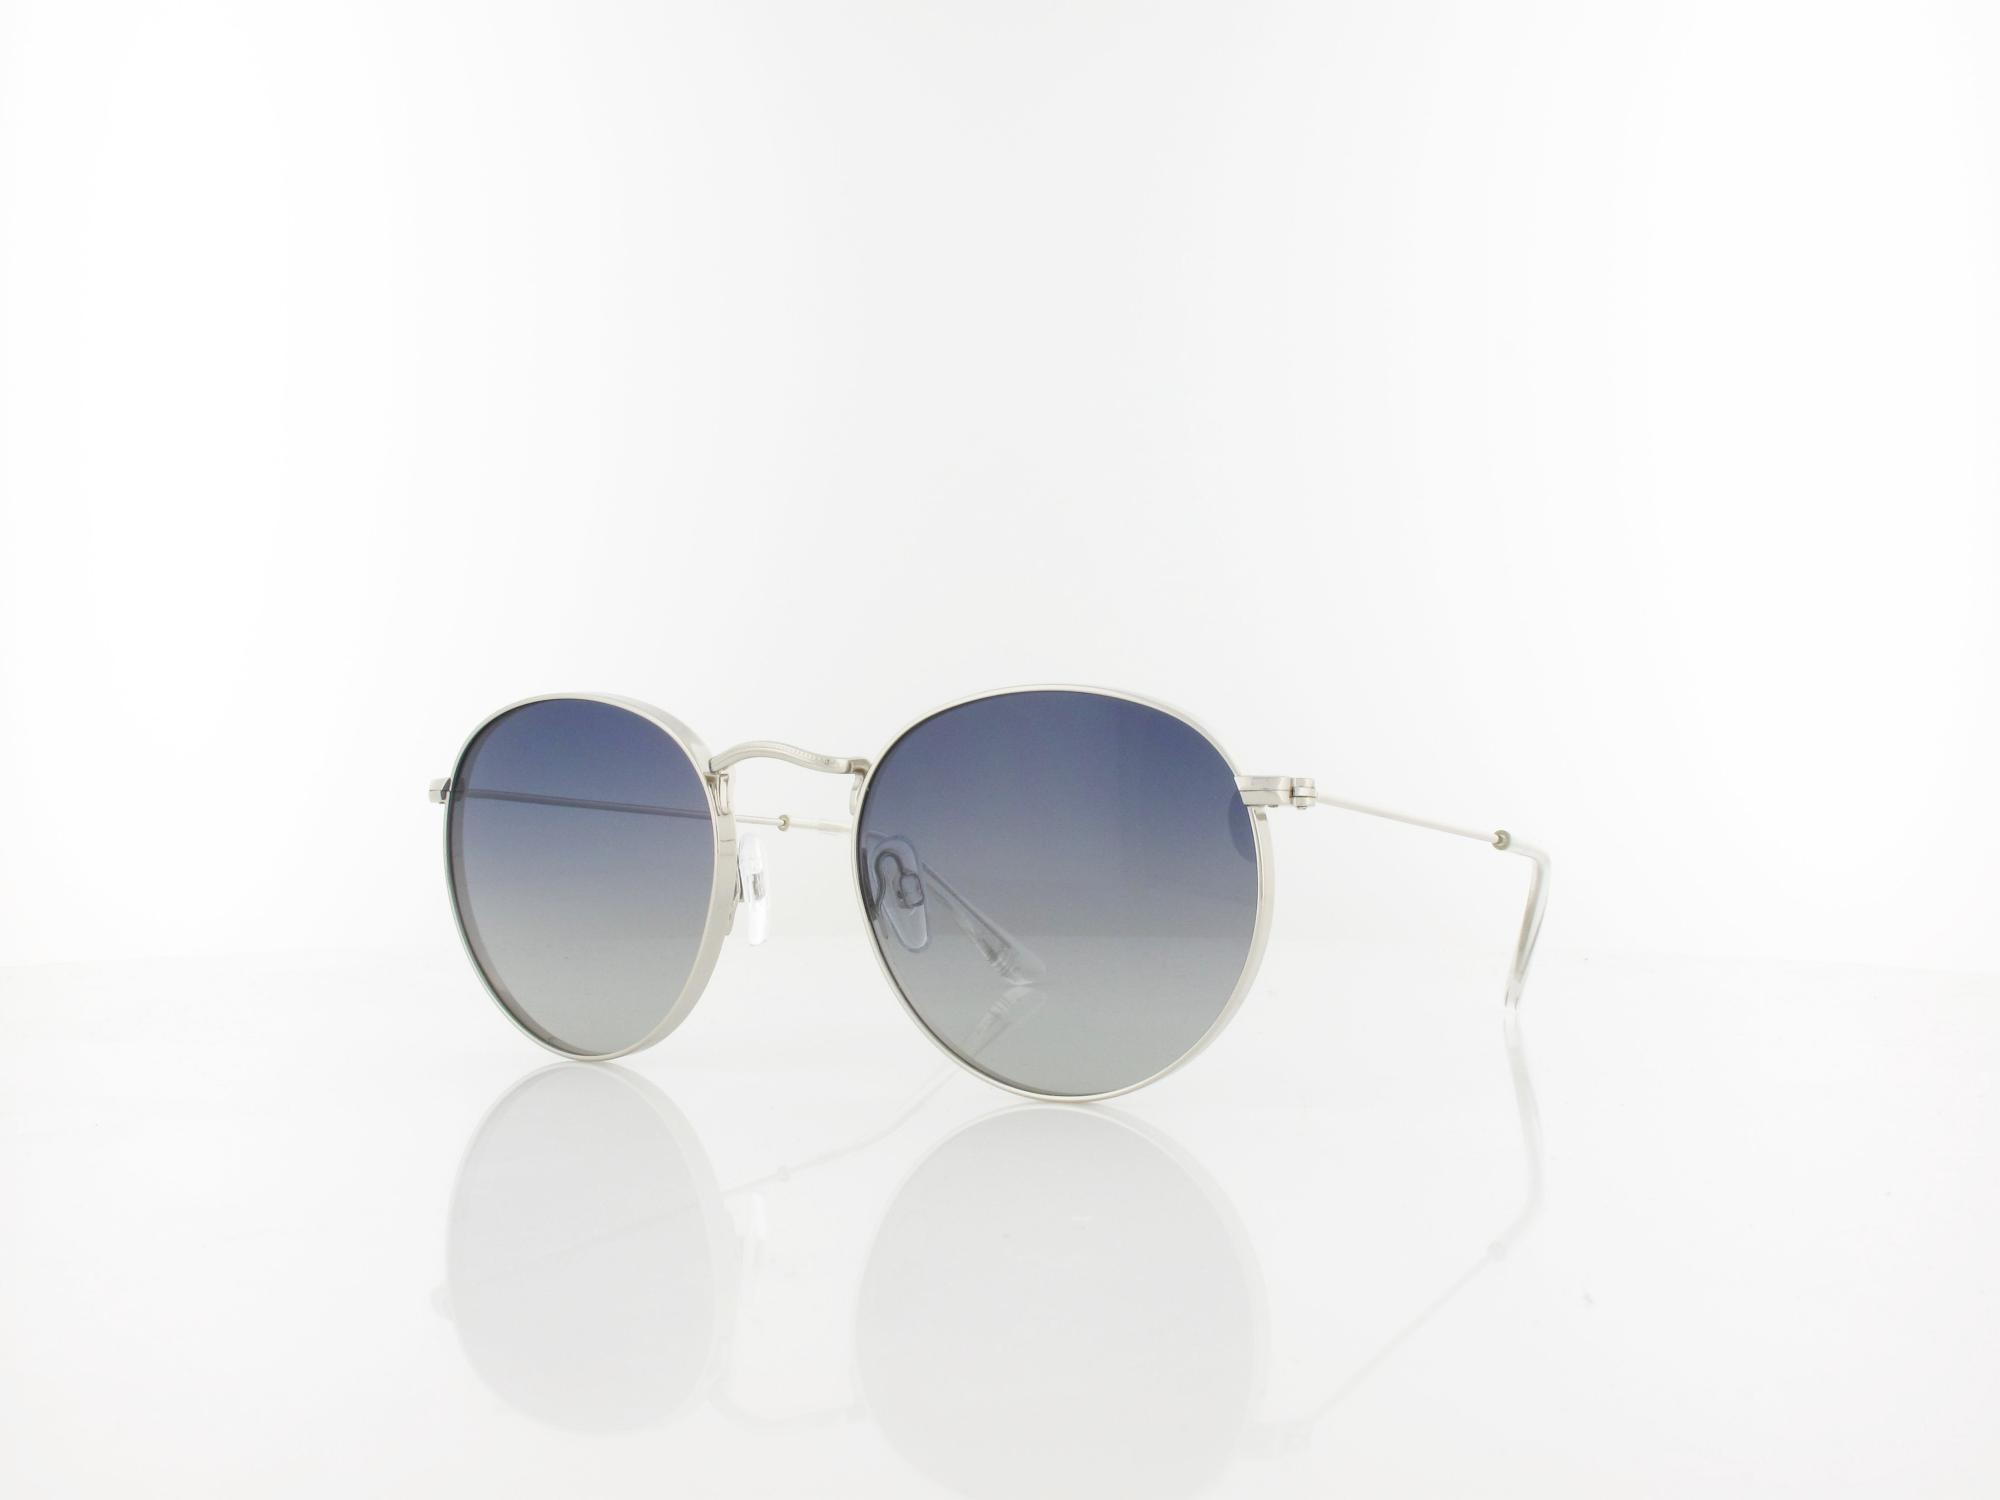 HIS polarized | HPS94104-2 52 | silver / blue gradient with silver flash polarized